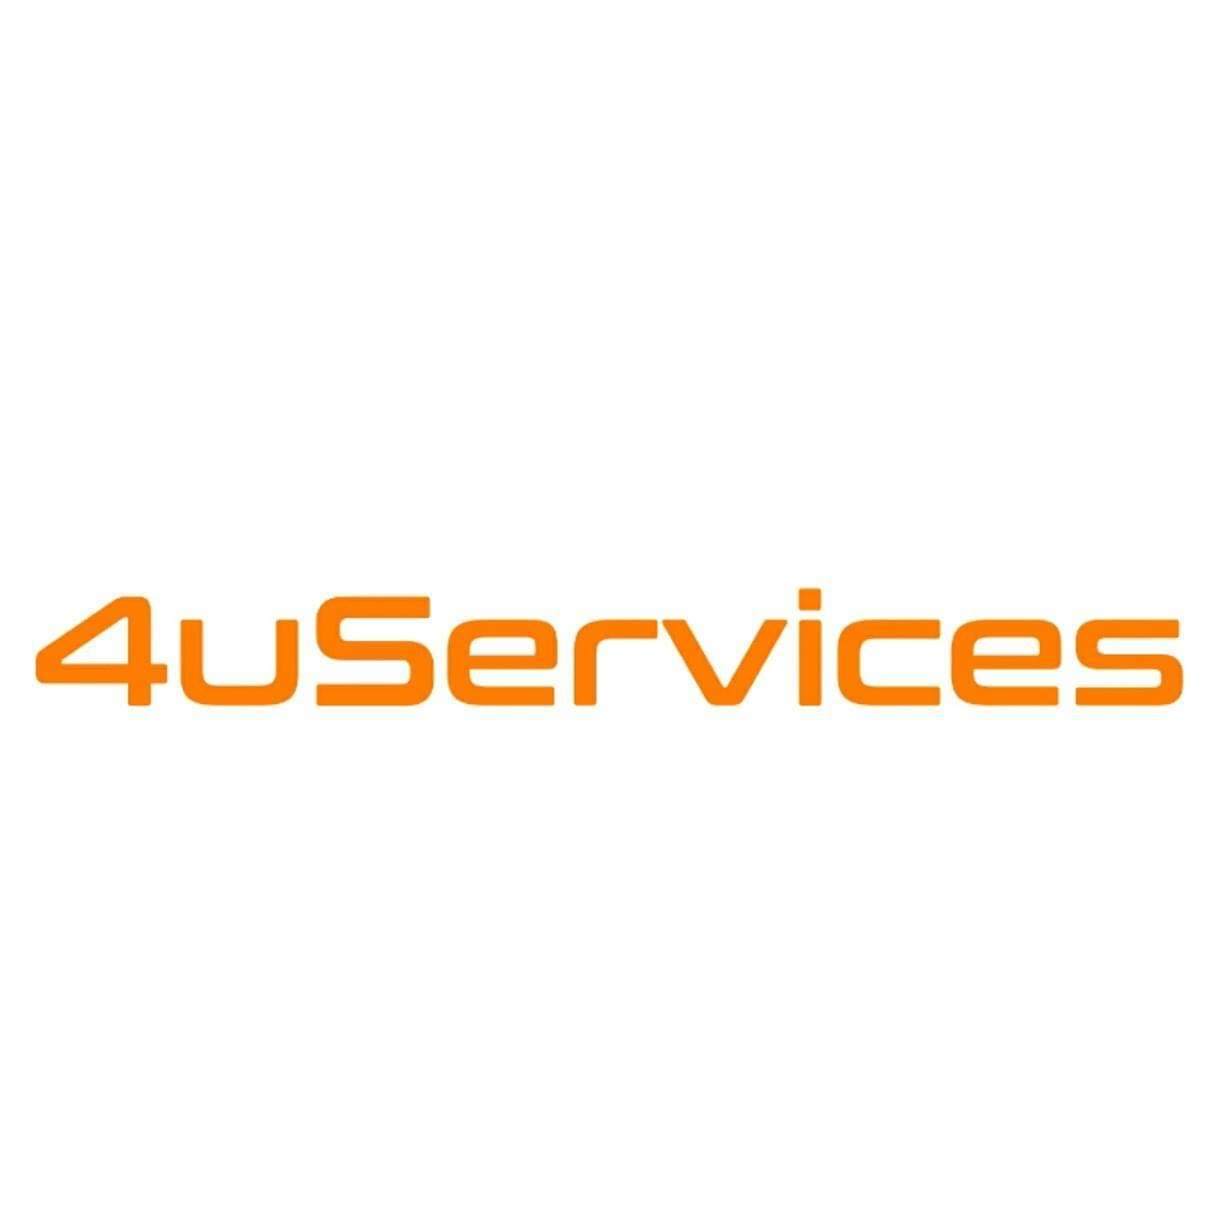 4uservices logo